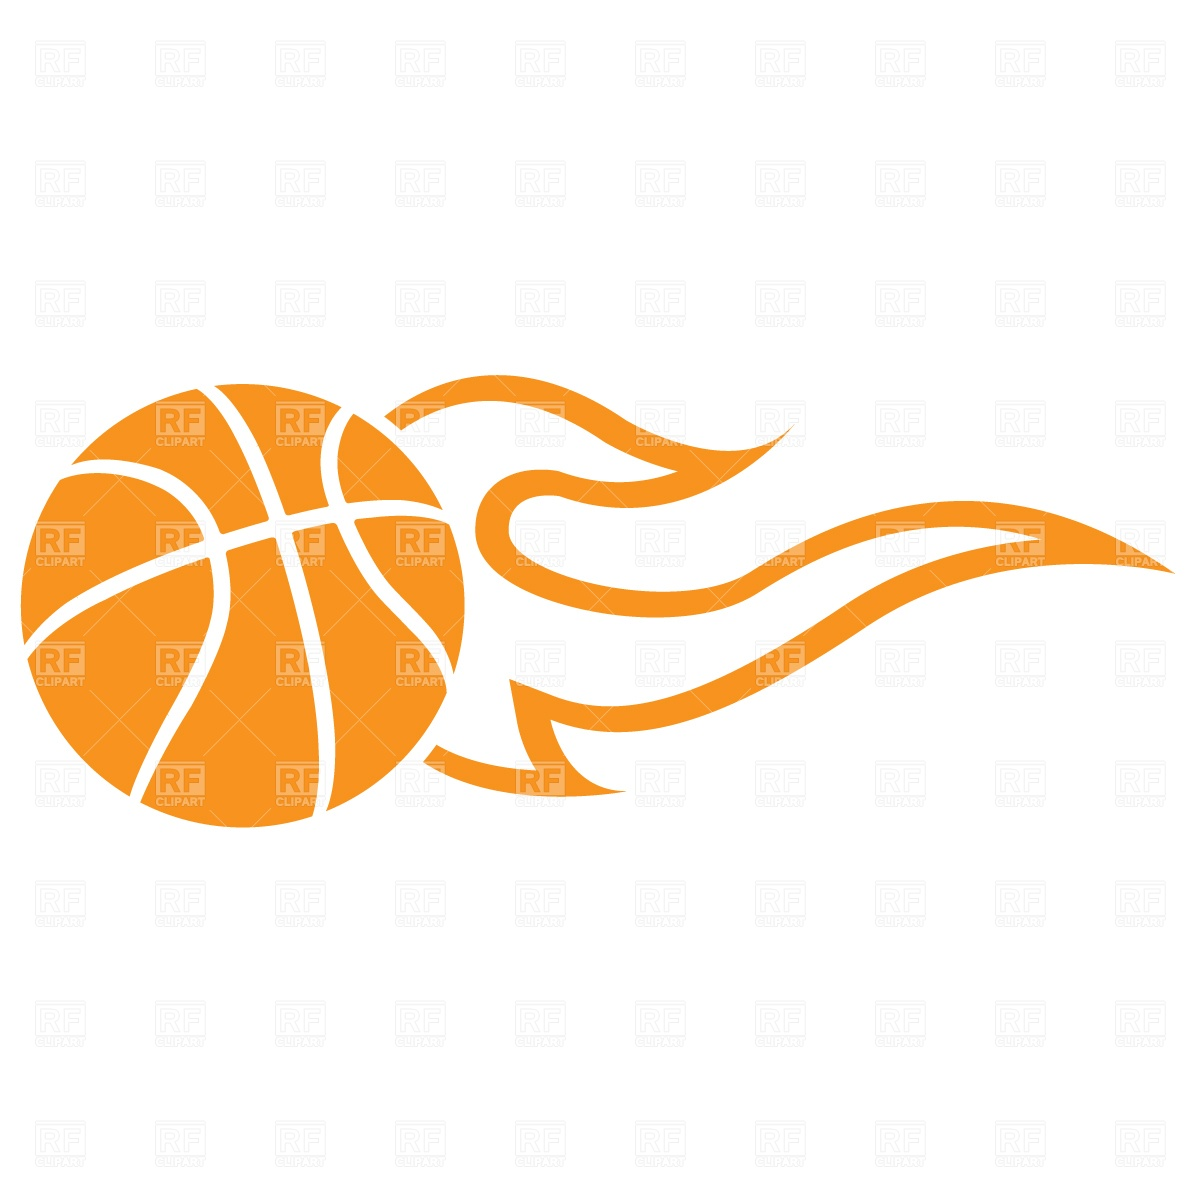 Flaming basketball clipart clipart royalty free stock Flaming Basketball Clipart - Clipart Kid clipart royalty free stock